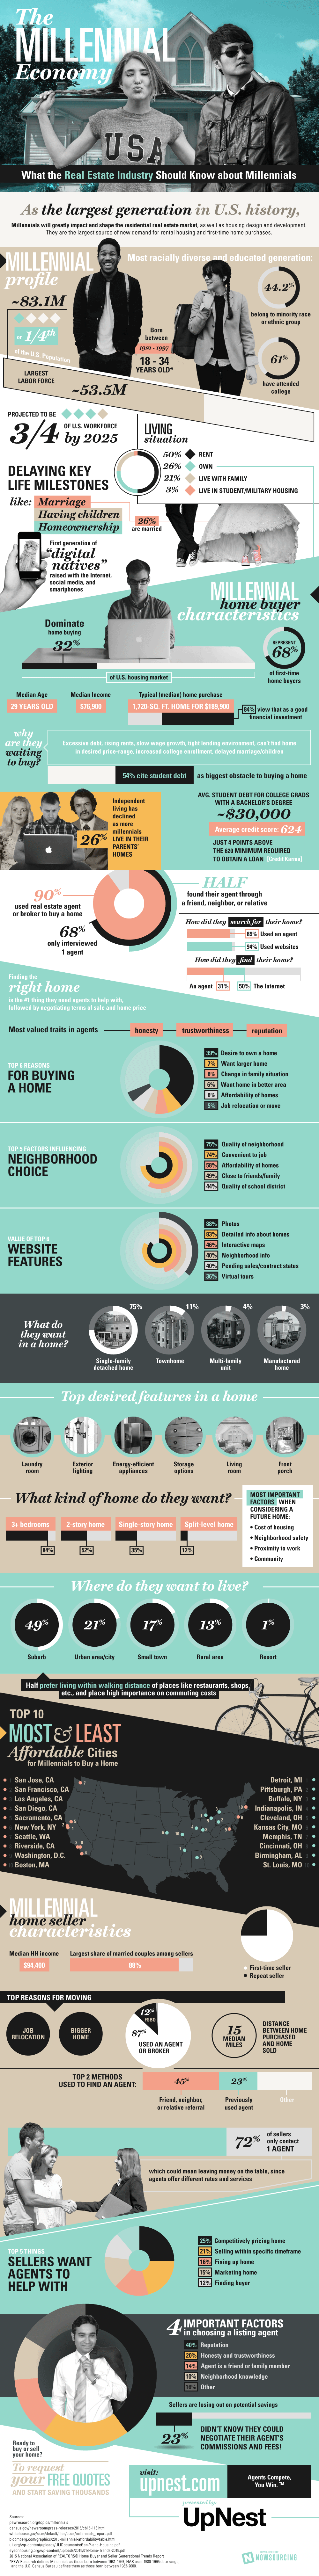 What the Real Estate Industry Should Know about Millennials #infographic